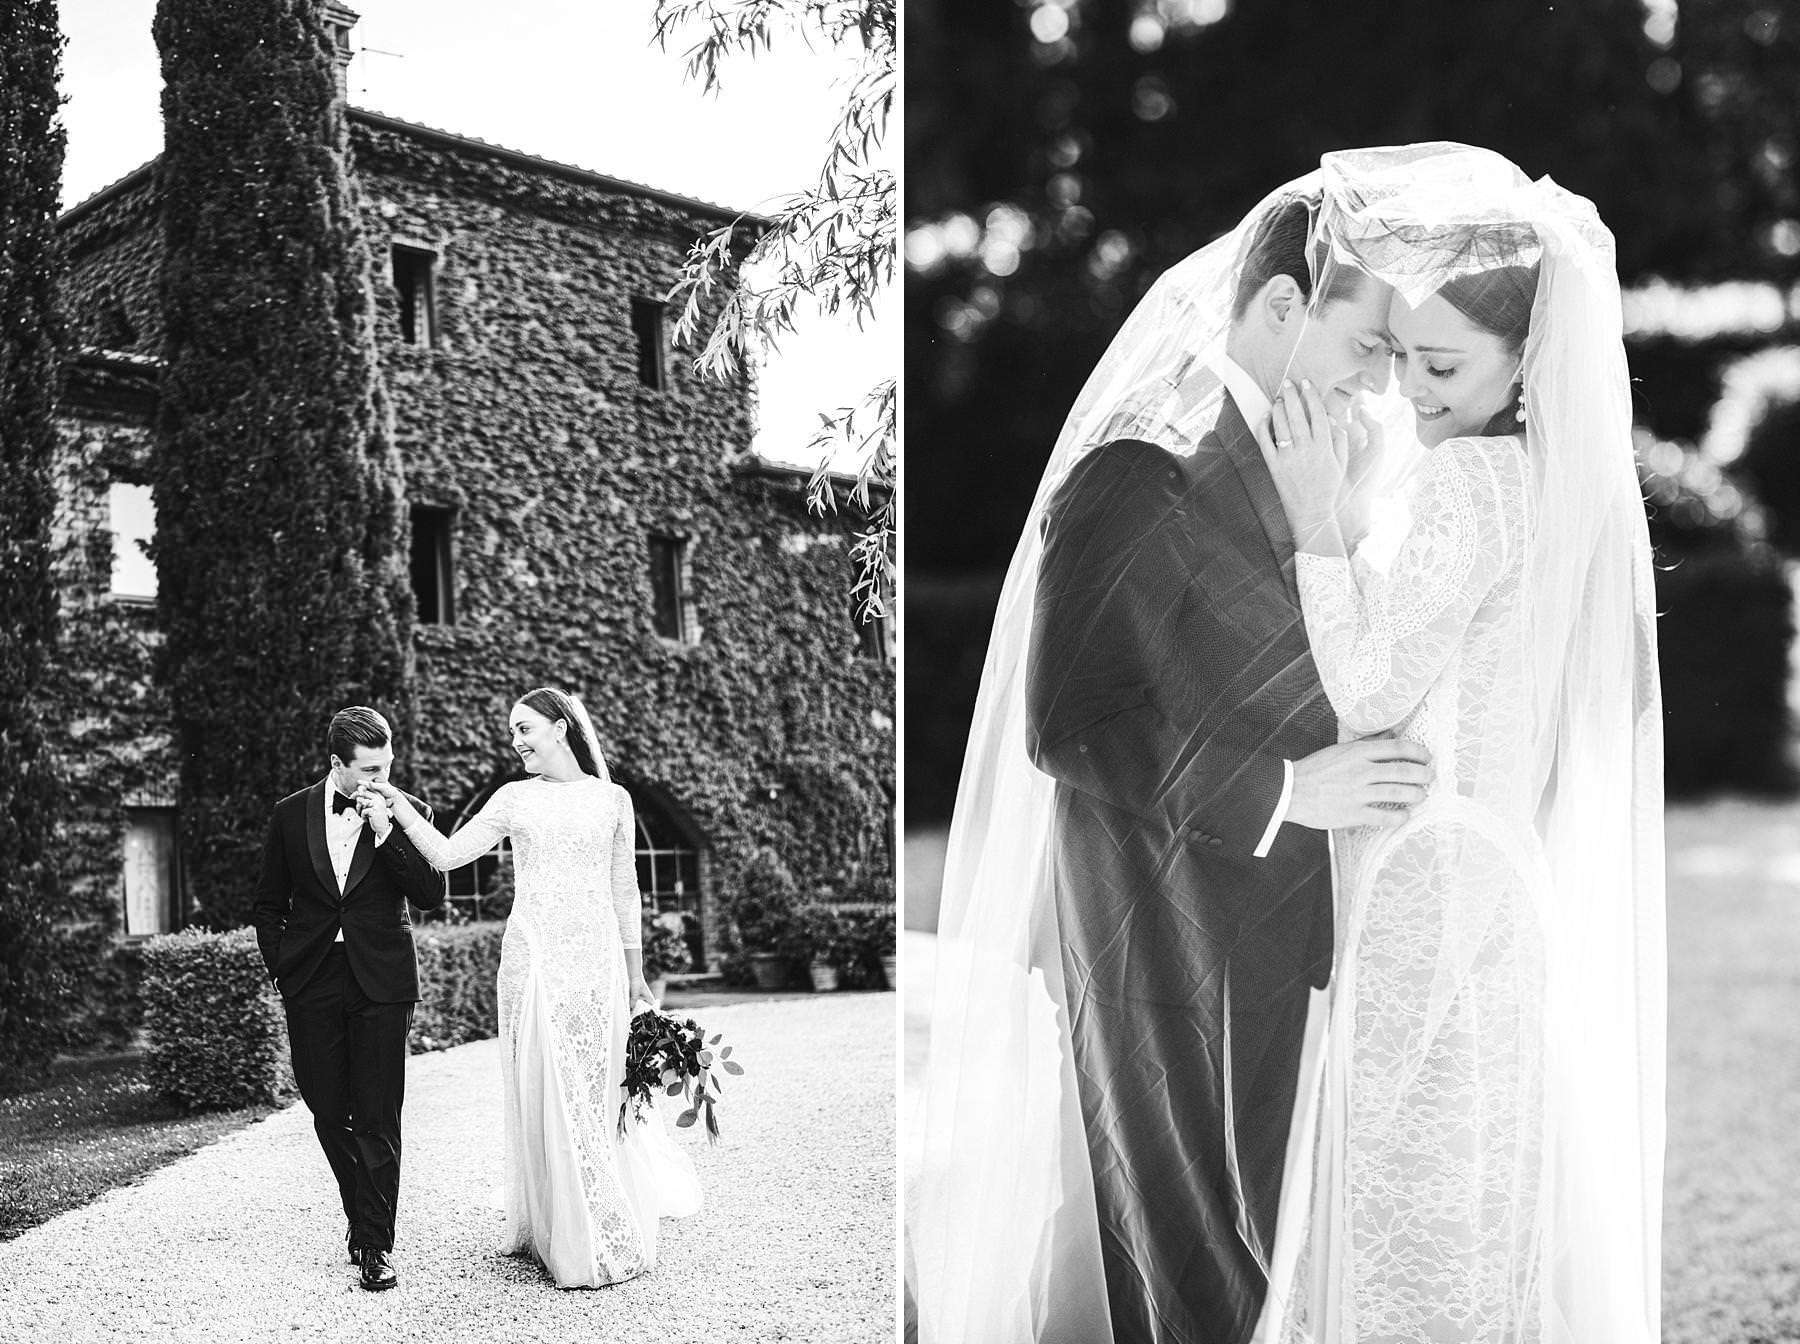 Destination wedding in Umbria at Villa l'Antica Posta, elegance and fun in a nutshell. Lovely and delicate intimate wedding portrait. Bride in Grace Loves Lace gown